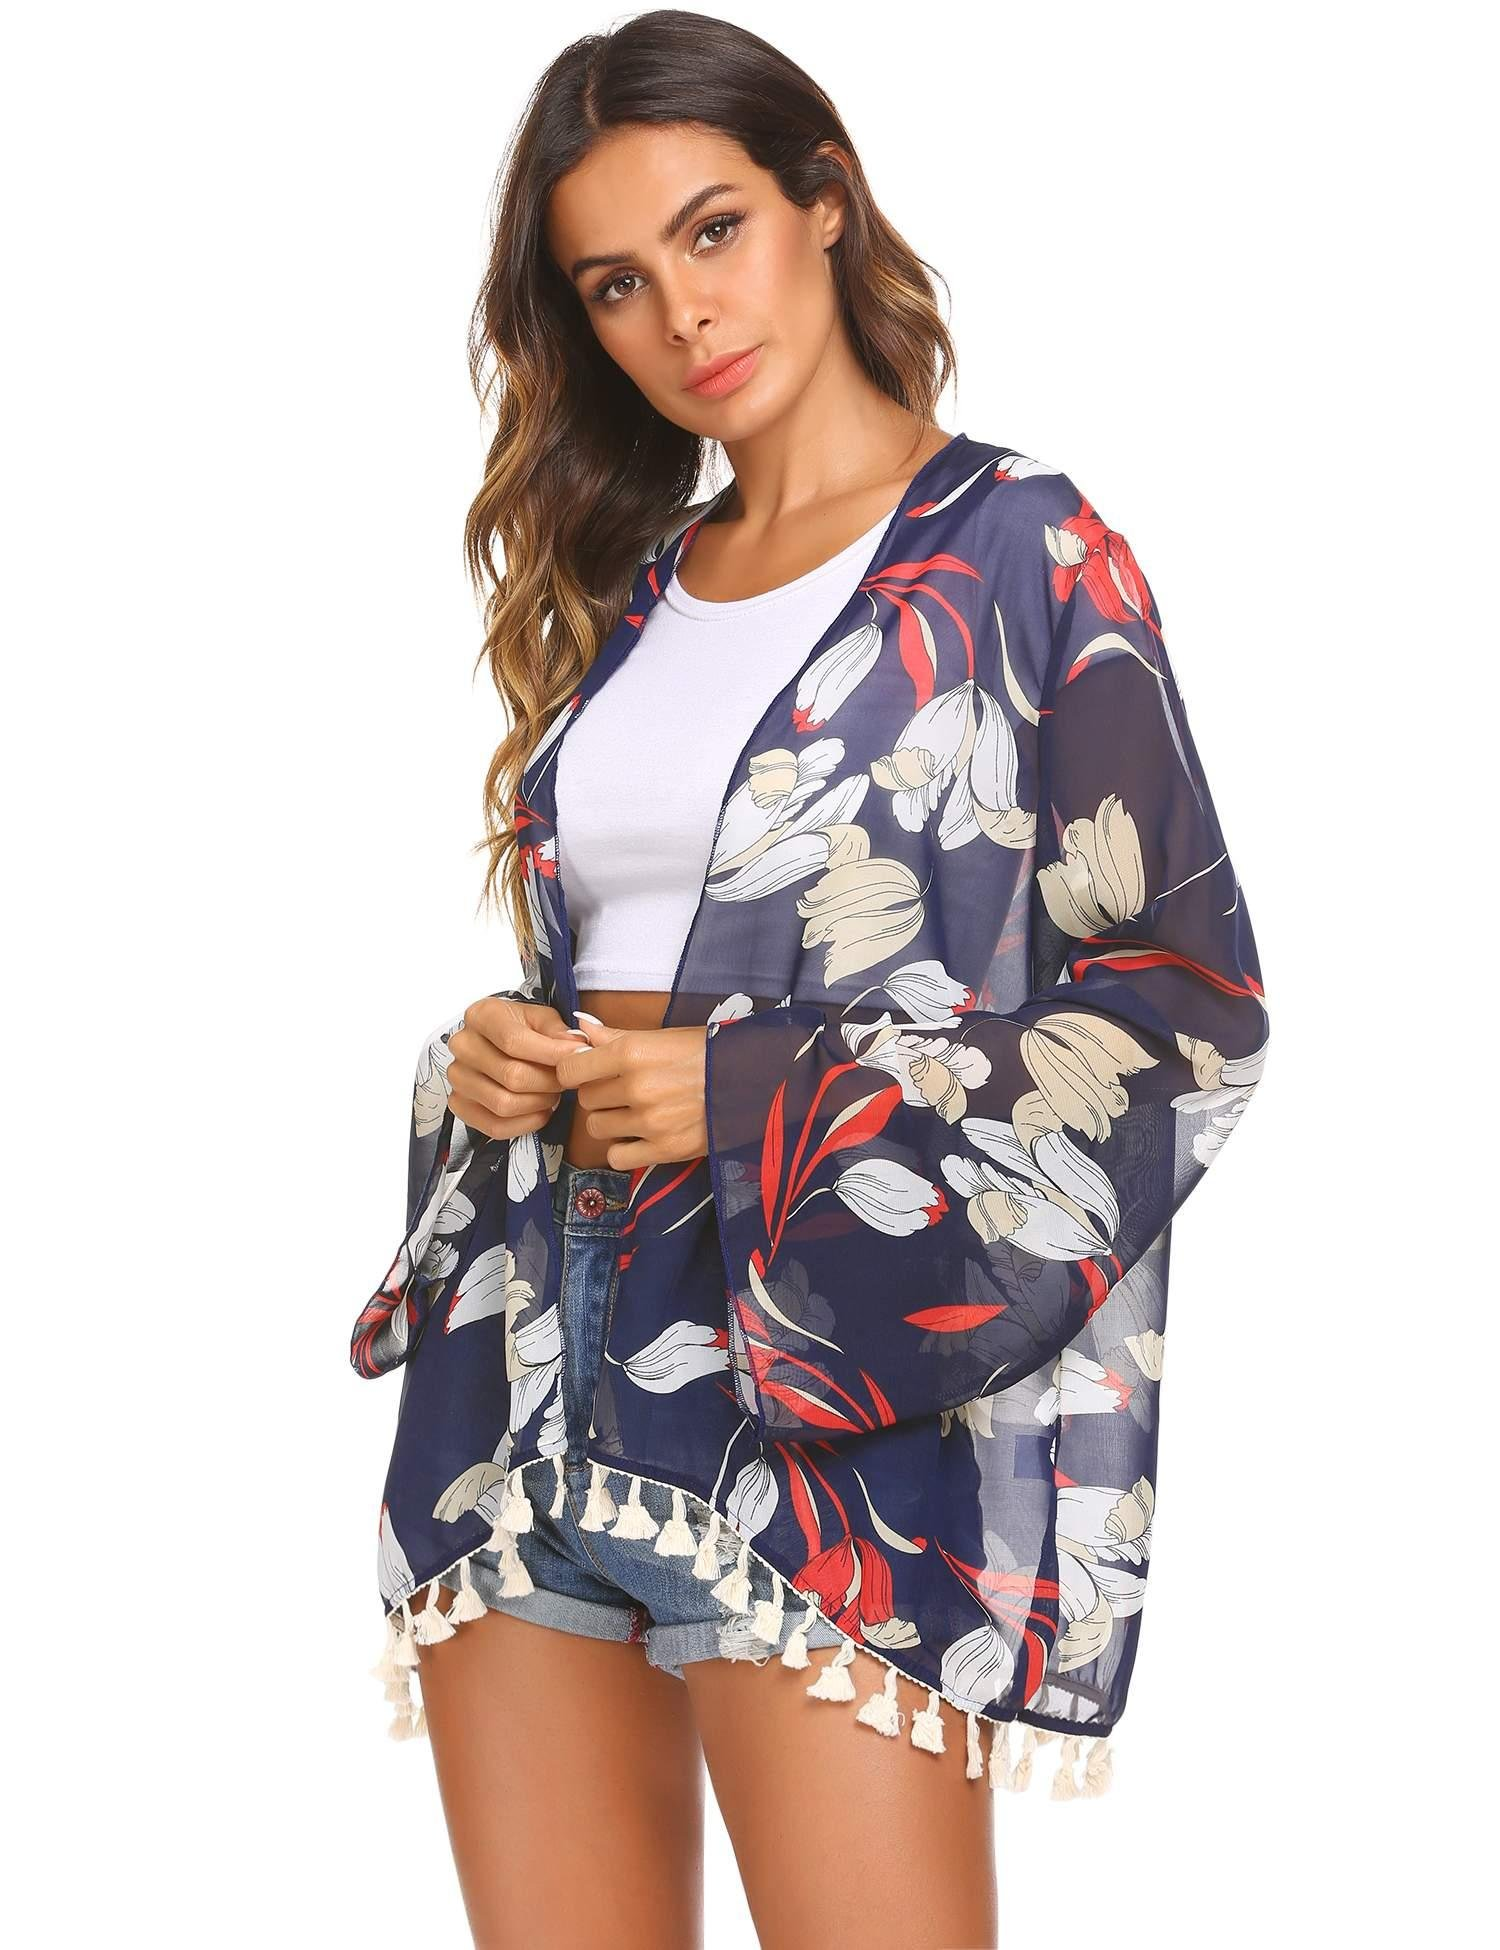 Miuniu Chiffon Cardigan, Flower Print Open Front Shawl Kimono Coat Jackets Cover up Blouse Tops